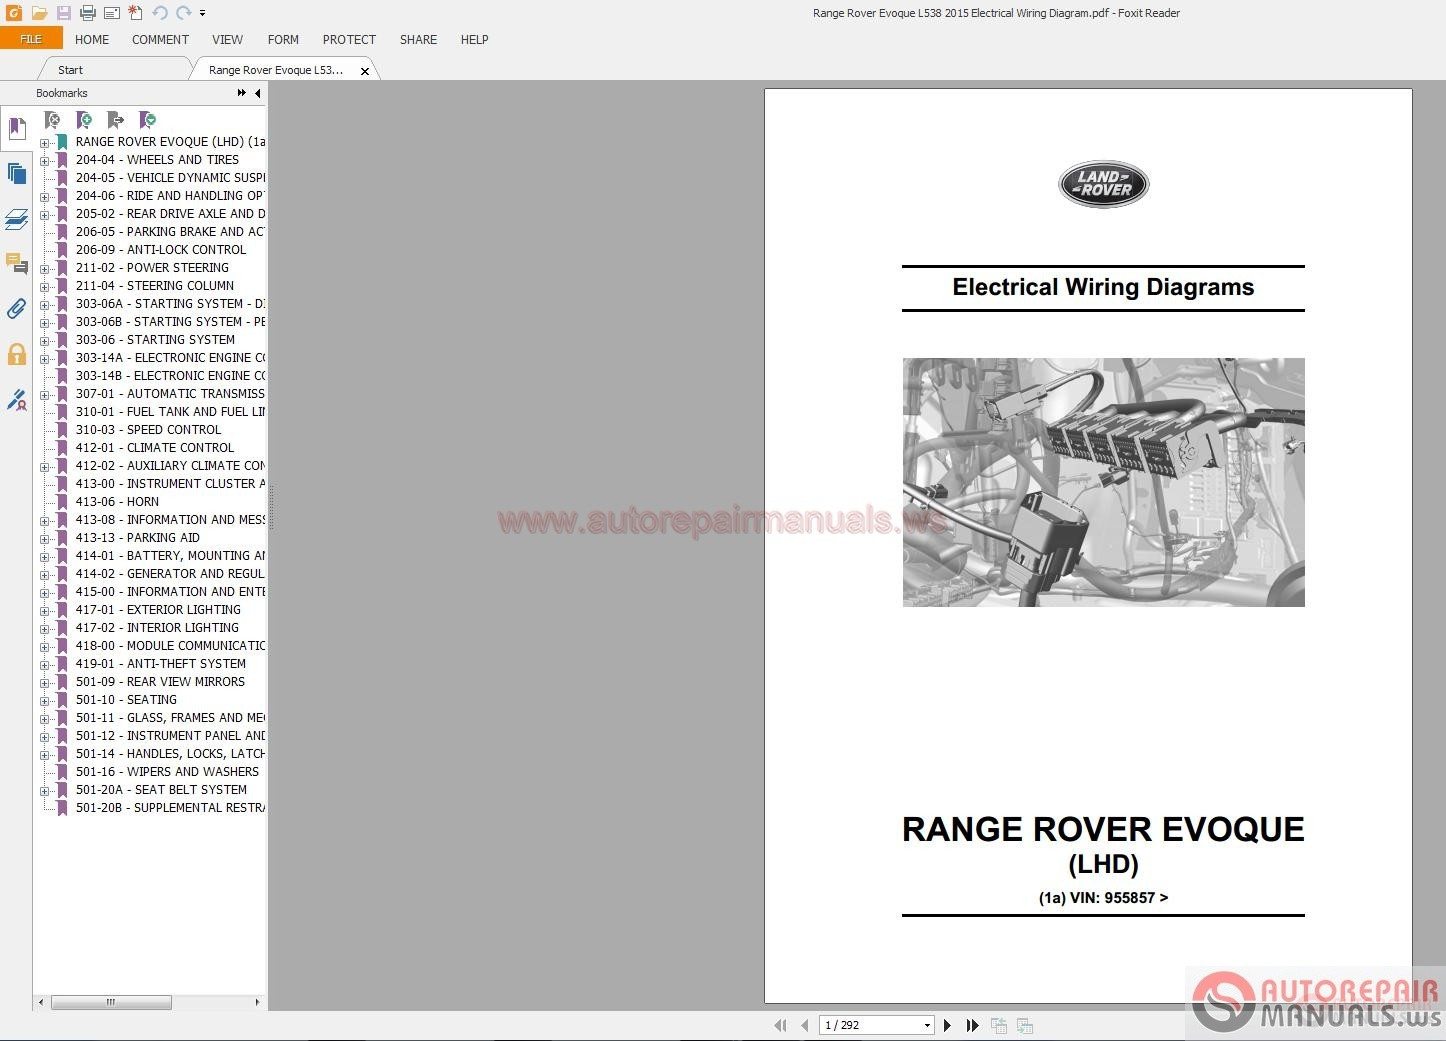 Wiring Diagram Manual Wdm : Range rover evoque l electrical wiring diagram